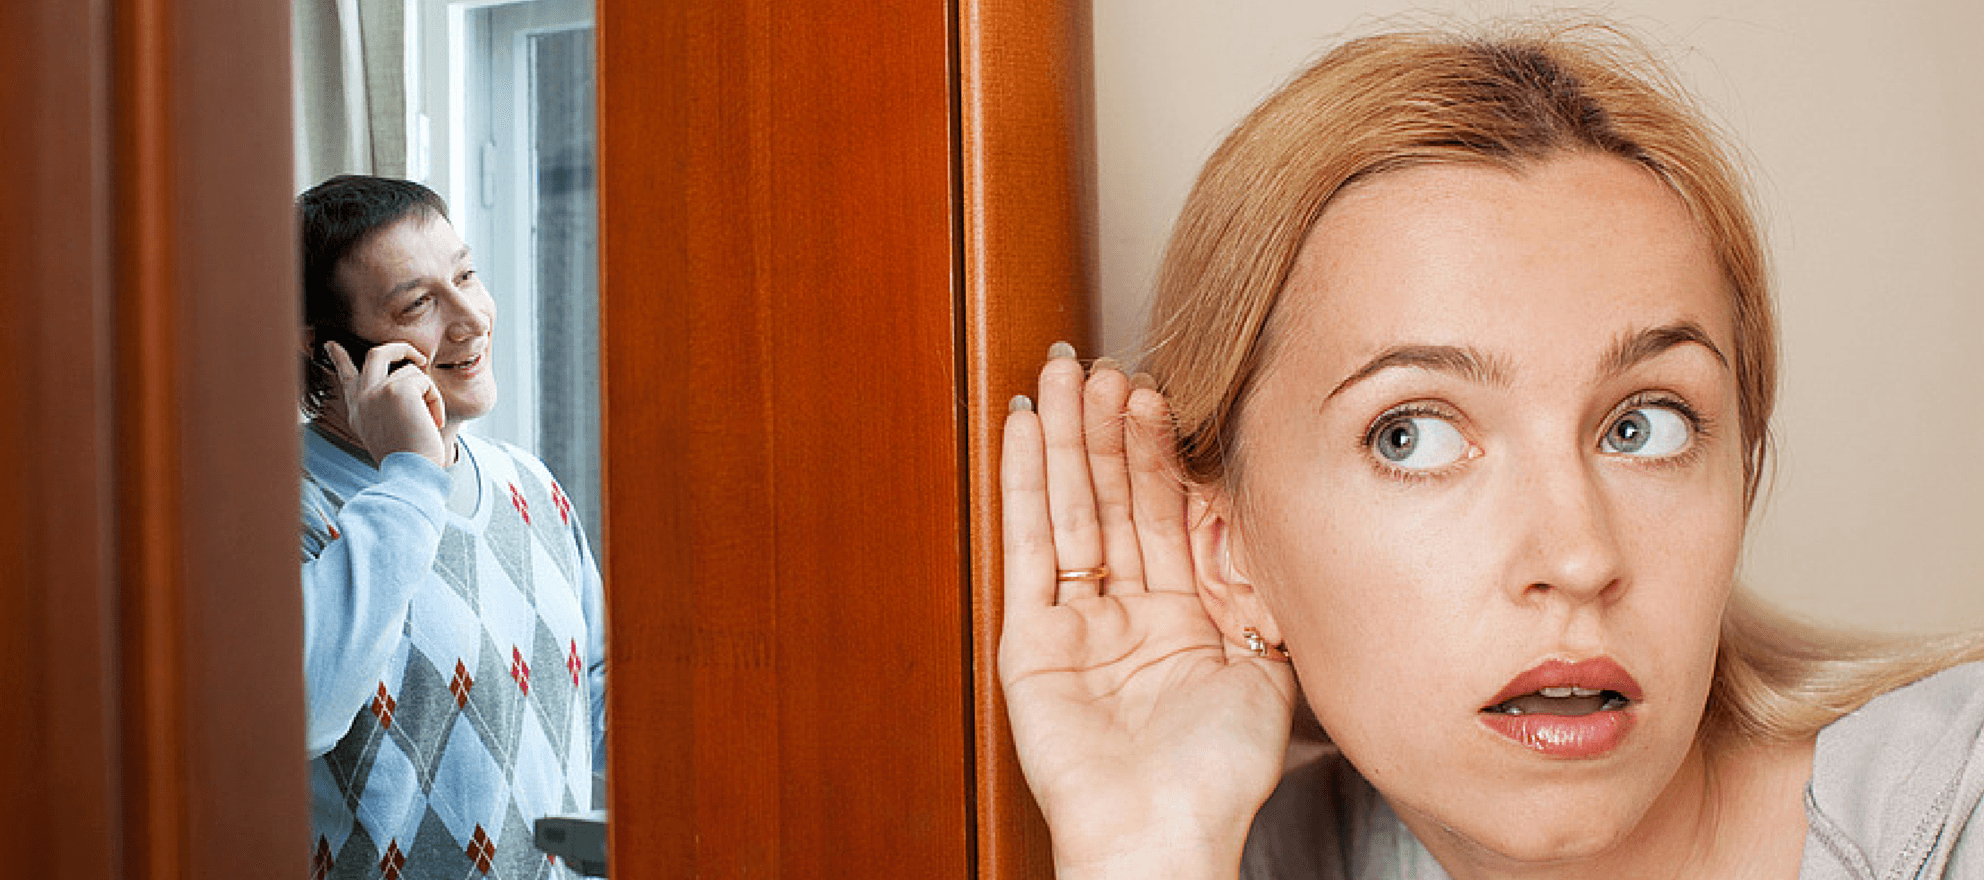 Inman listens in: how coaching calls really work